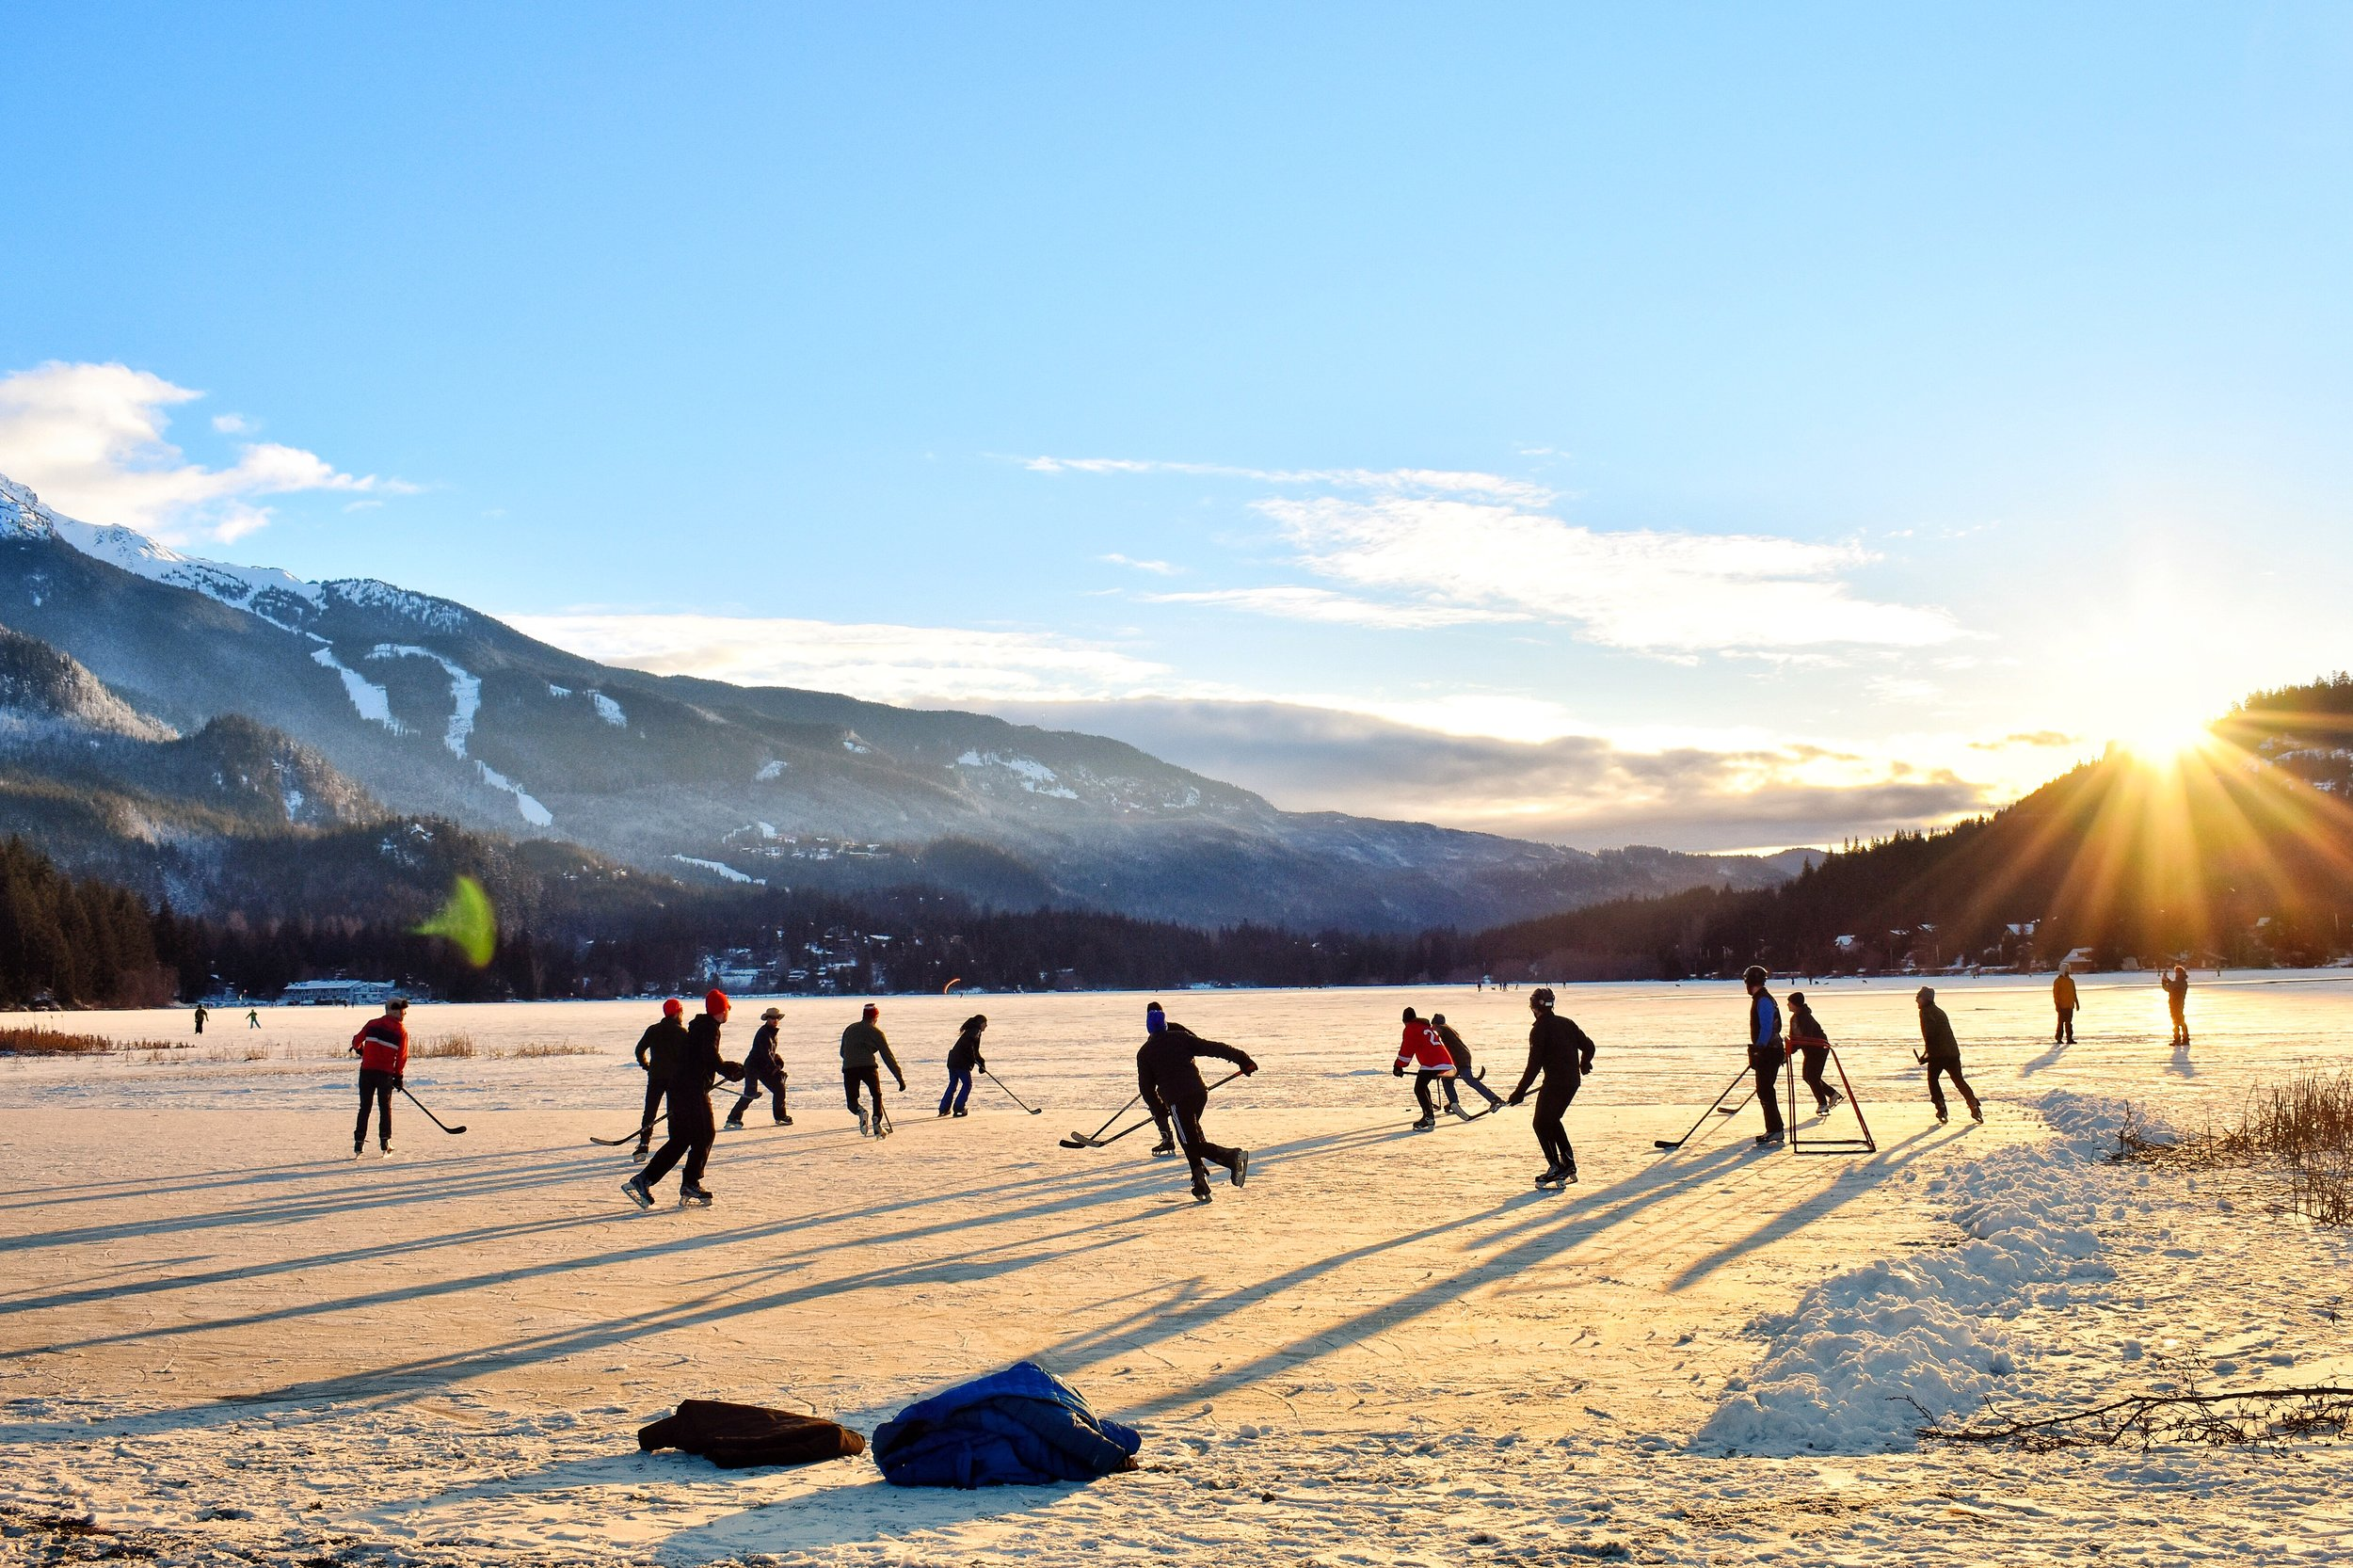 Skating on frozen lakes in Canada